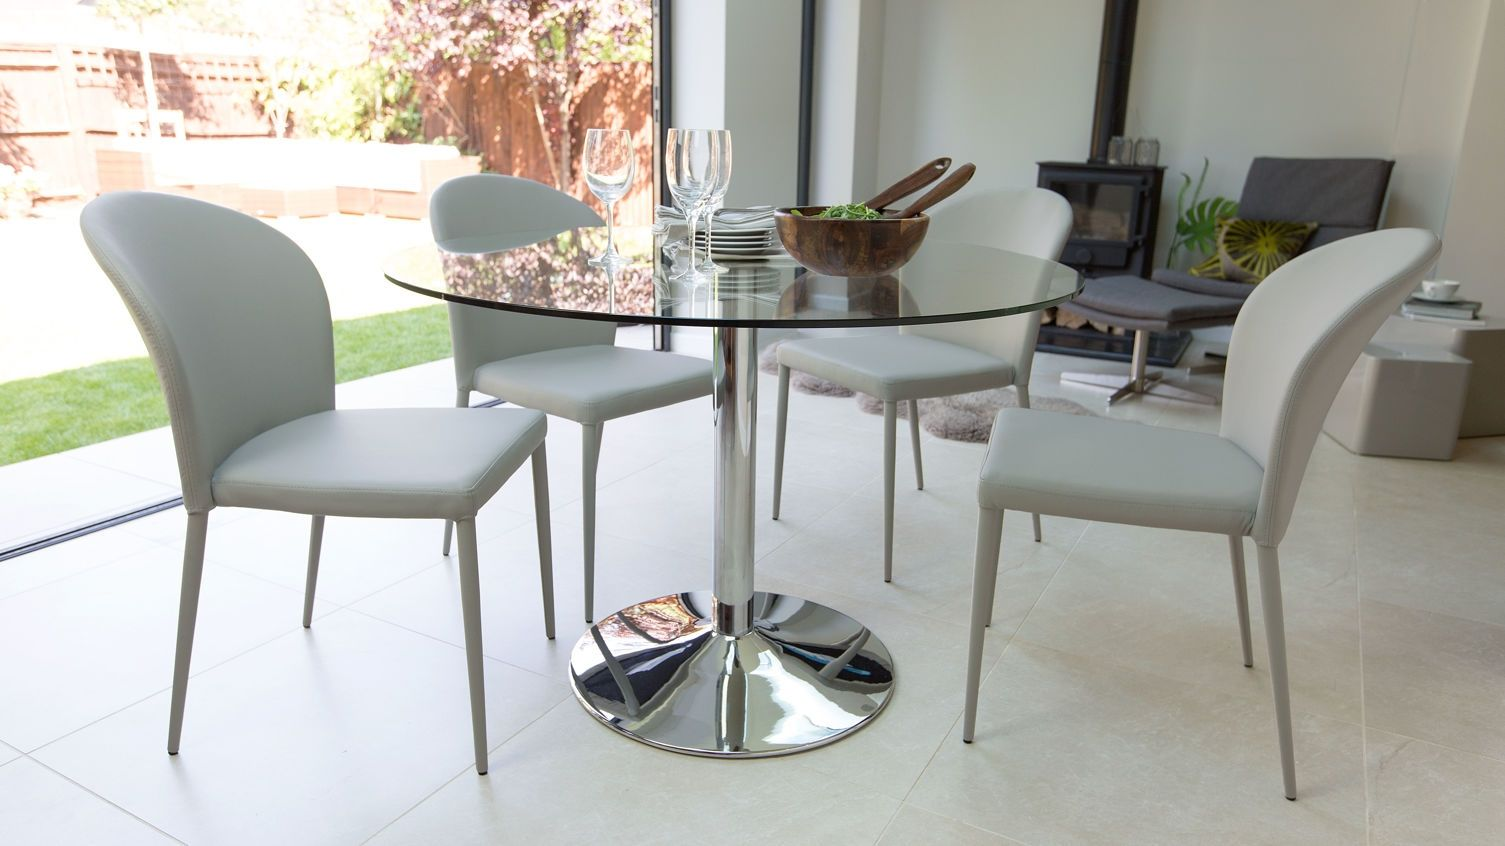 4 Seater Glass Dining Table → https   wp.me p8owWu- 691f61ae6a